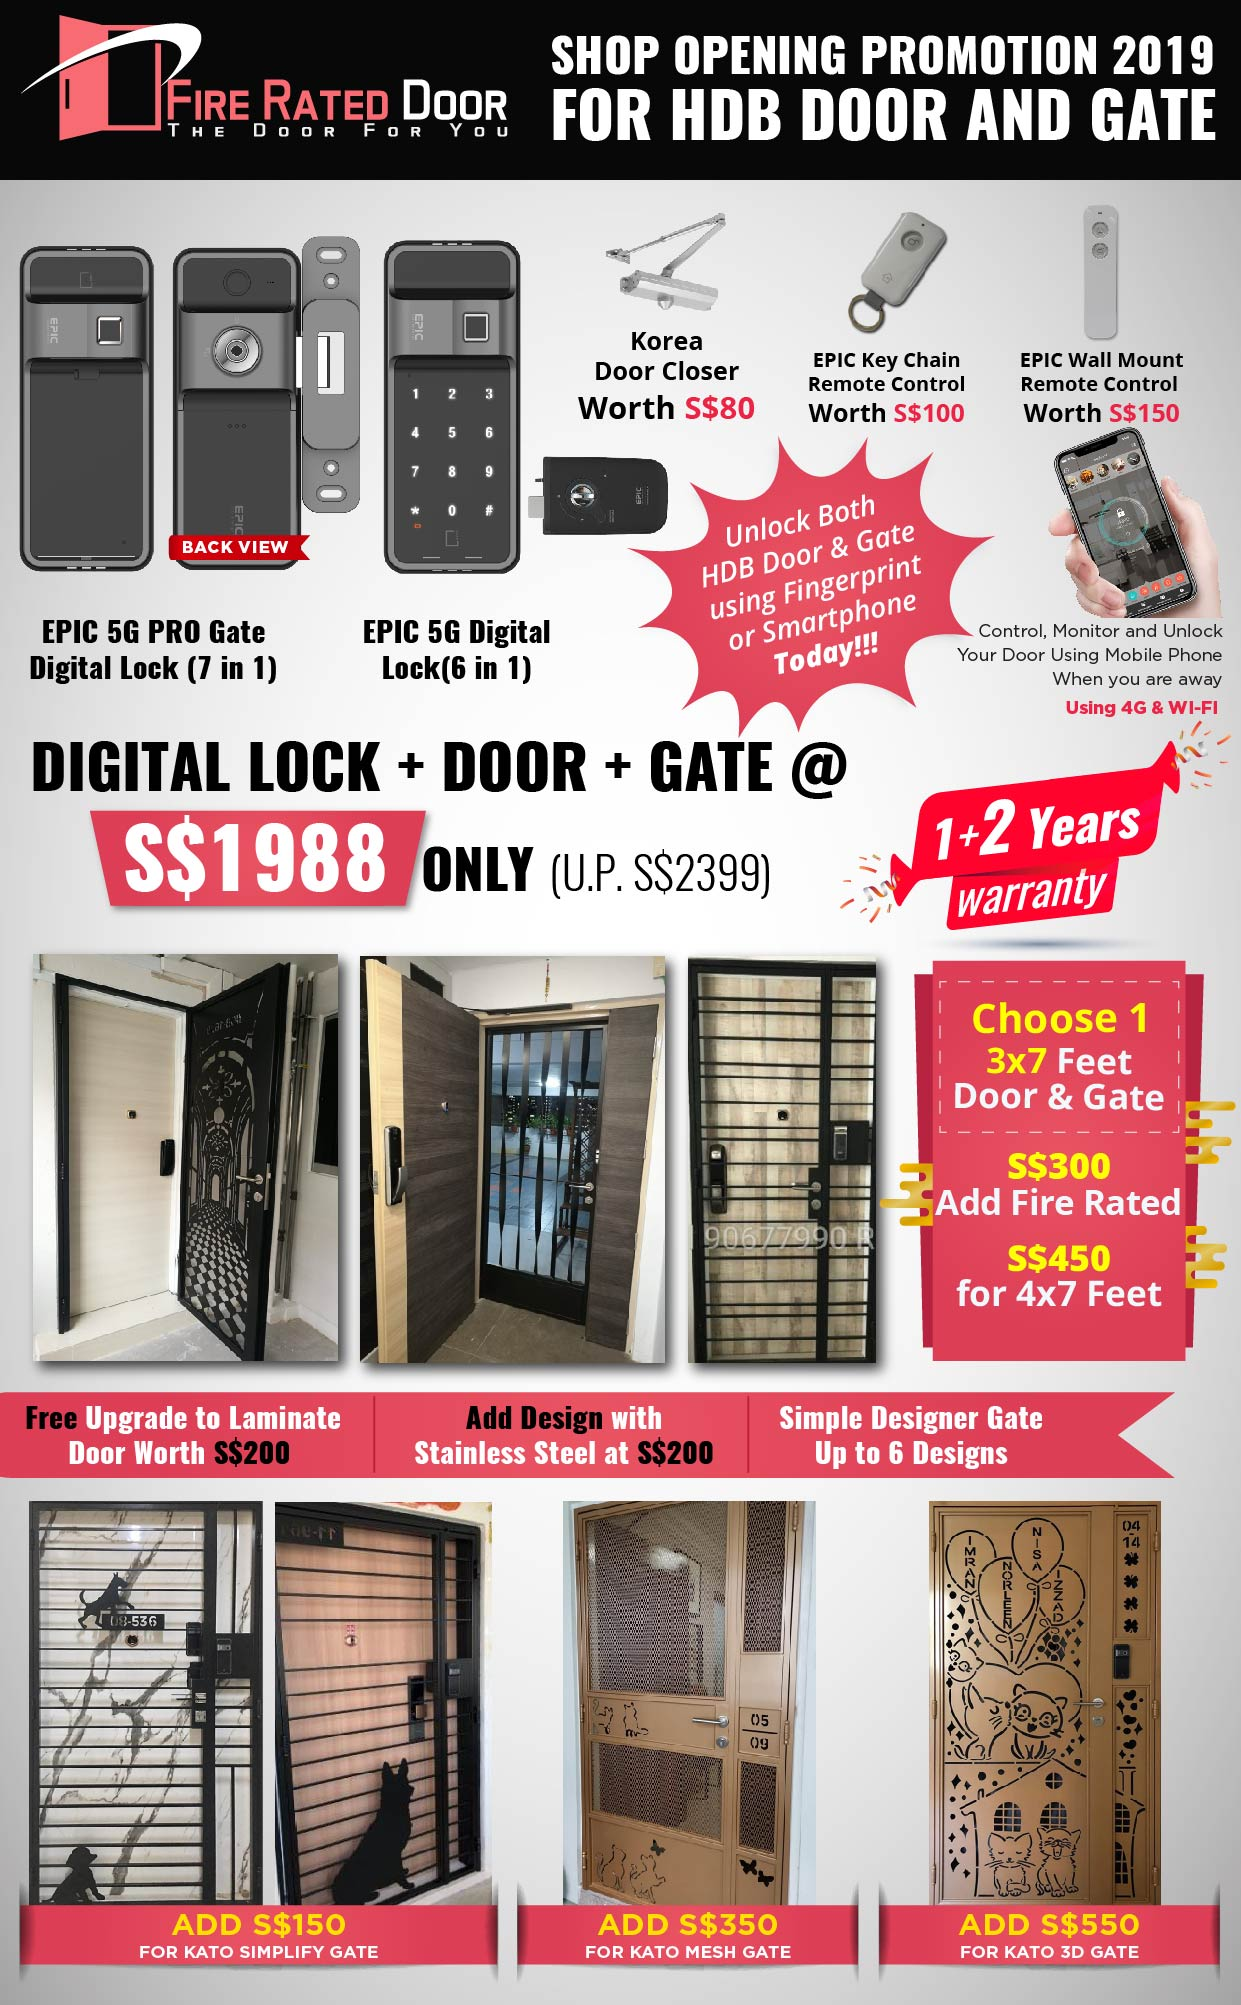 EPIC 5G Pro Gate Digital Lock HDB Door and Gate